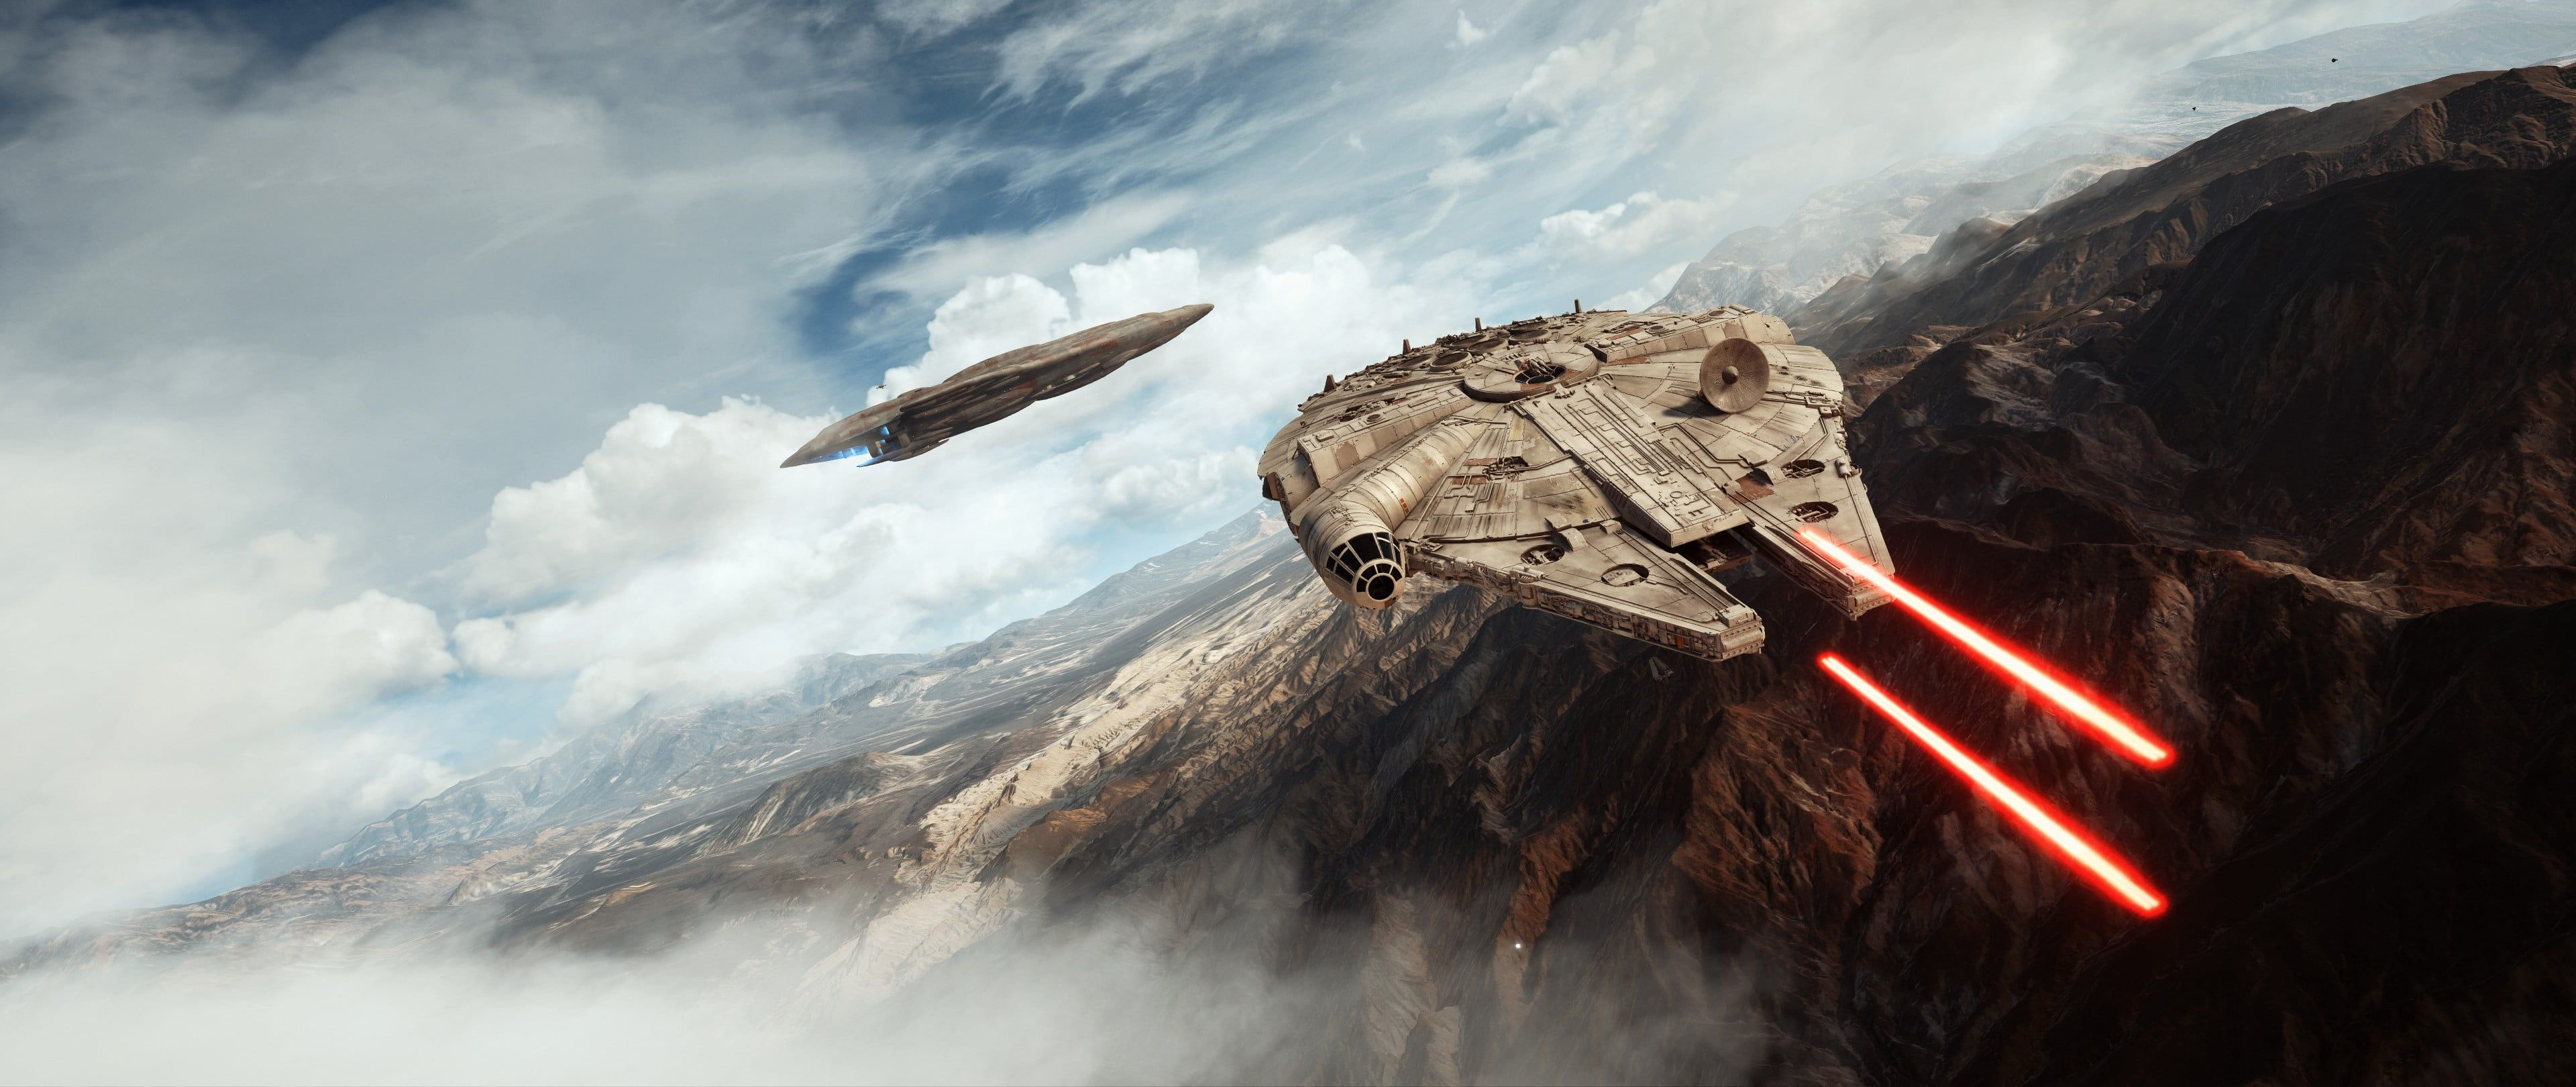 Star Wars Millennium Falcon Digital Wallpaper Millennium Falcon Star Wars Battlefront Video Game In 2020 Star Wars Canvas Art Star Wars Background Star Wars Wallpaper